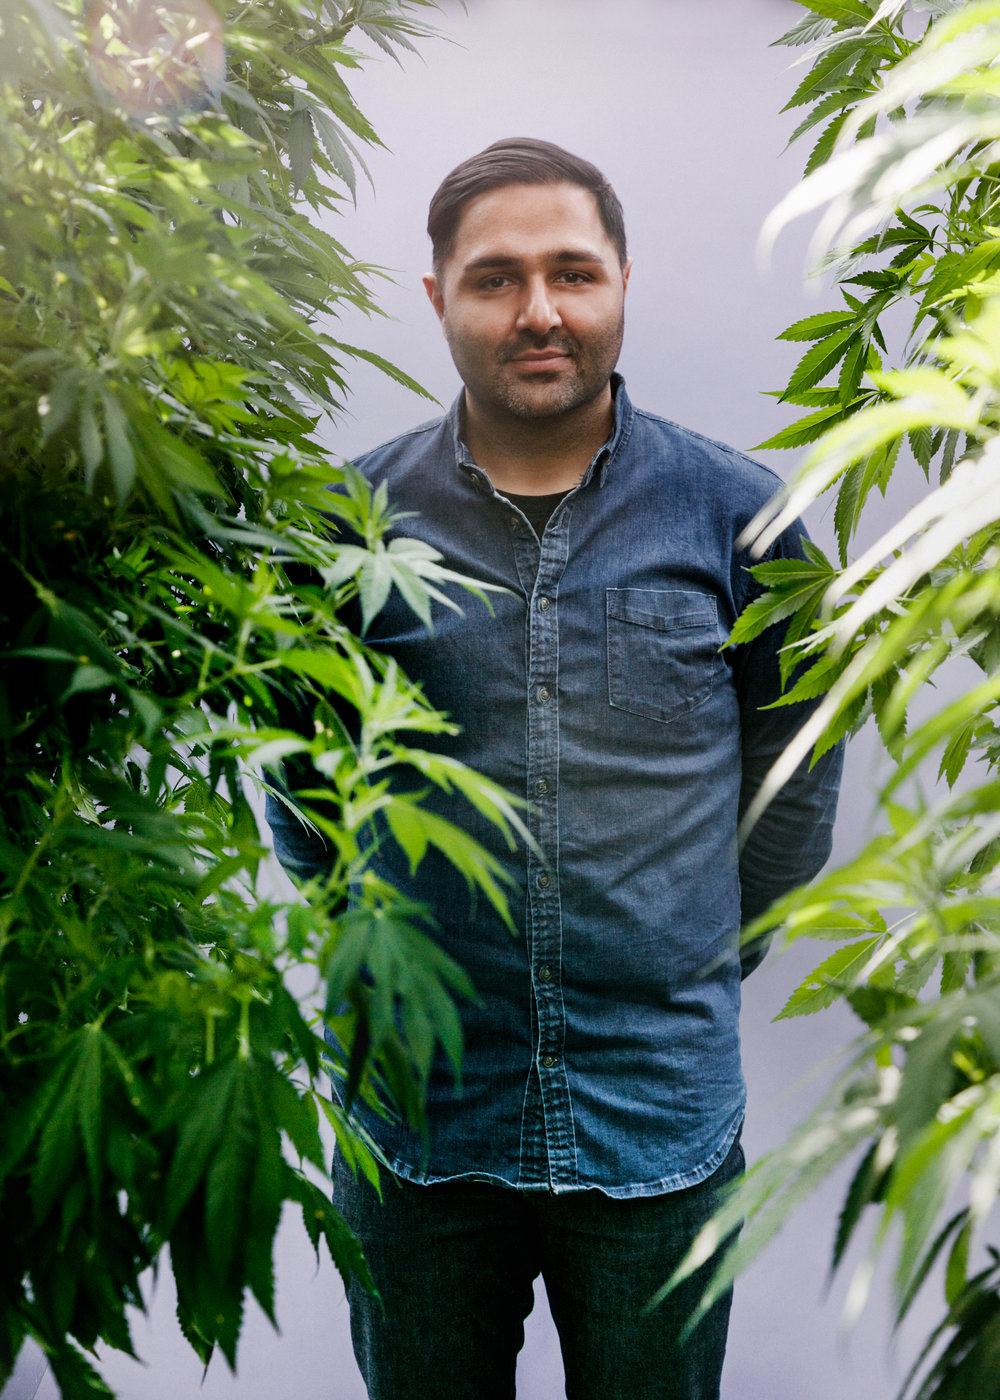 Mandesh brings extensive consumer products experience to Pure Sunfarms, leading the team as President and CEO. His mandate is to establish Pure Sunfarms as the leading choice for consumers when it comes to trusted quality cannabis.  As a seasoned senior level executive, Mandesh has led business operations for a number of well-known retailers, including LCBO, Target Canada, Aritzia and Loblaws. Most recently, Mandesh joined Pure Sunfarms from Liquor Control Board of Ontario (LCBO) as a Senior Vice President, Supply Chain and Wholesale where he led LCBO's supply chain division, and developed and managed its supply chain and wholesale strategy as the the LCBO prepared for the legalization of adult-use cannabis. Mandesh is well versed in proven successes in managing supply chains at scale and developing key business strategies across a diverse set of industries.  Mandesh is committed to leveraging best-in-class operational practices to lead Pure Sunfarms to success, and strives to create a work culture true to his values of humility, empathy and teamwork. He holds a Bachelor of Science in Industrial Engineering from University of Toronto.  In addition to his responsibilities at Pure Sunfarms, Mandesh also serves on the Board of Directors for NLS, Canada's leading logistics provider for fashion, footwear, action wear and general merchandise.